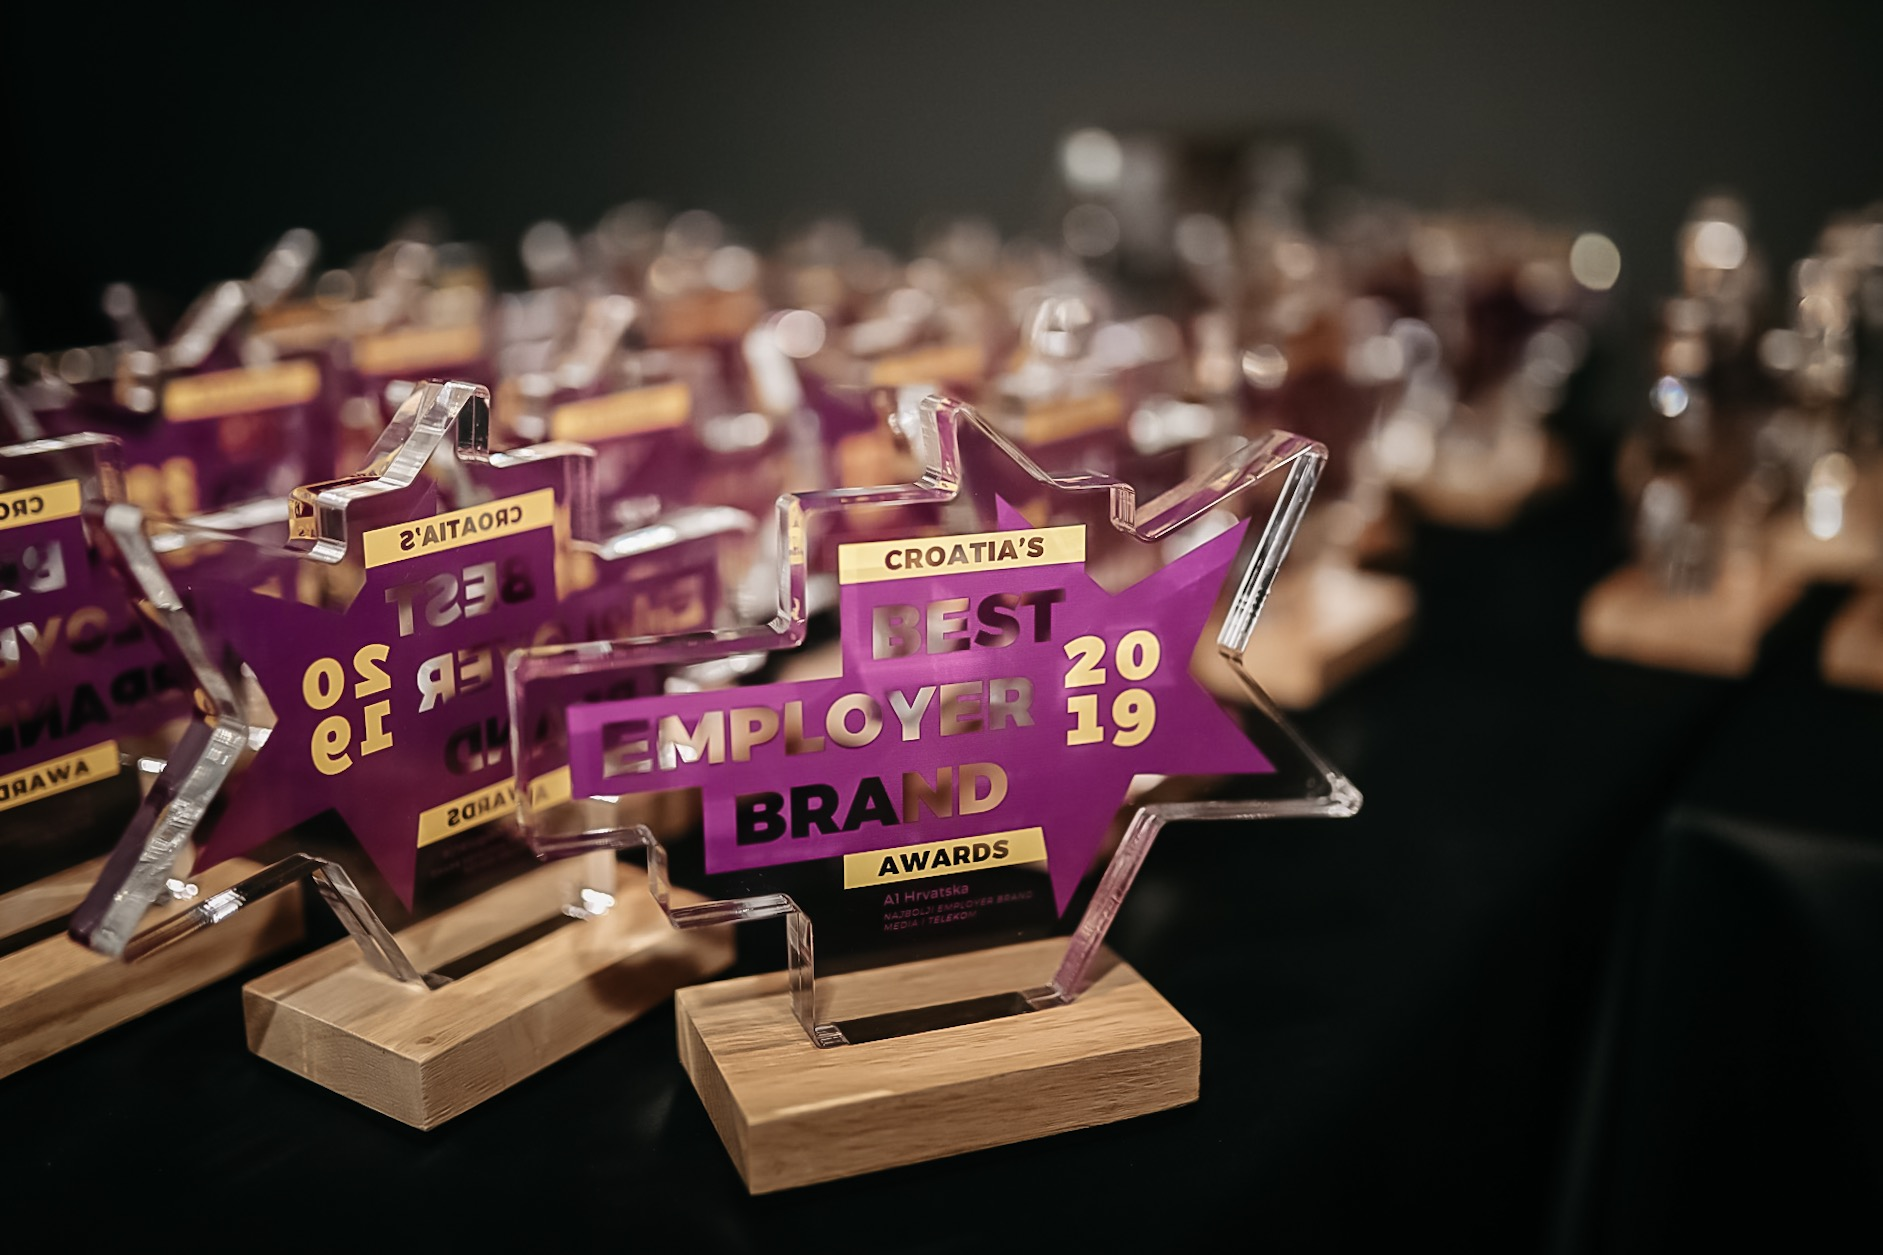 Croatia's_Best_Employer_Brand_Awards_(fo